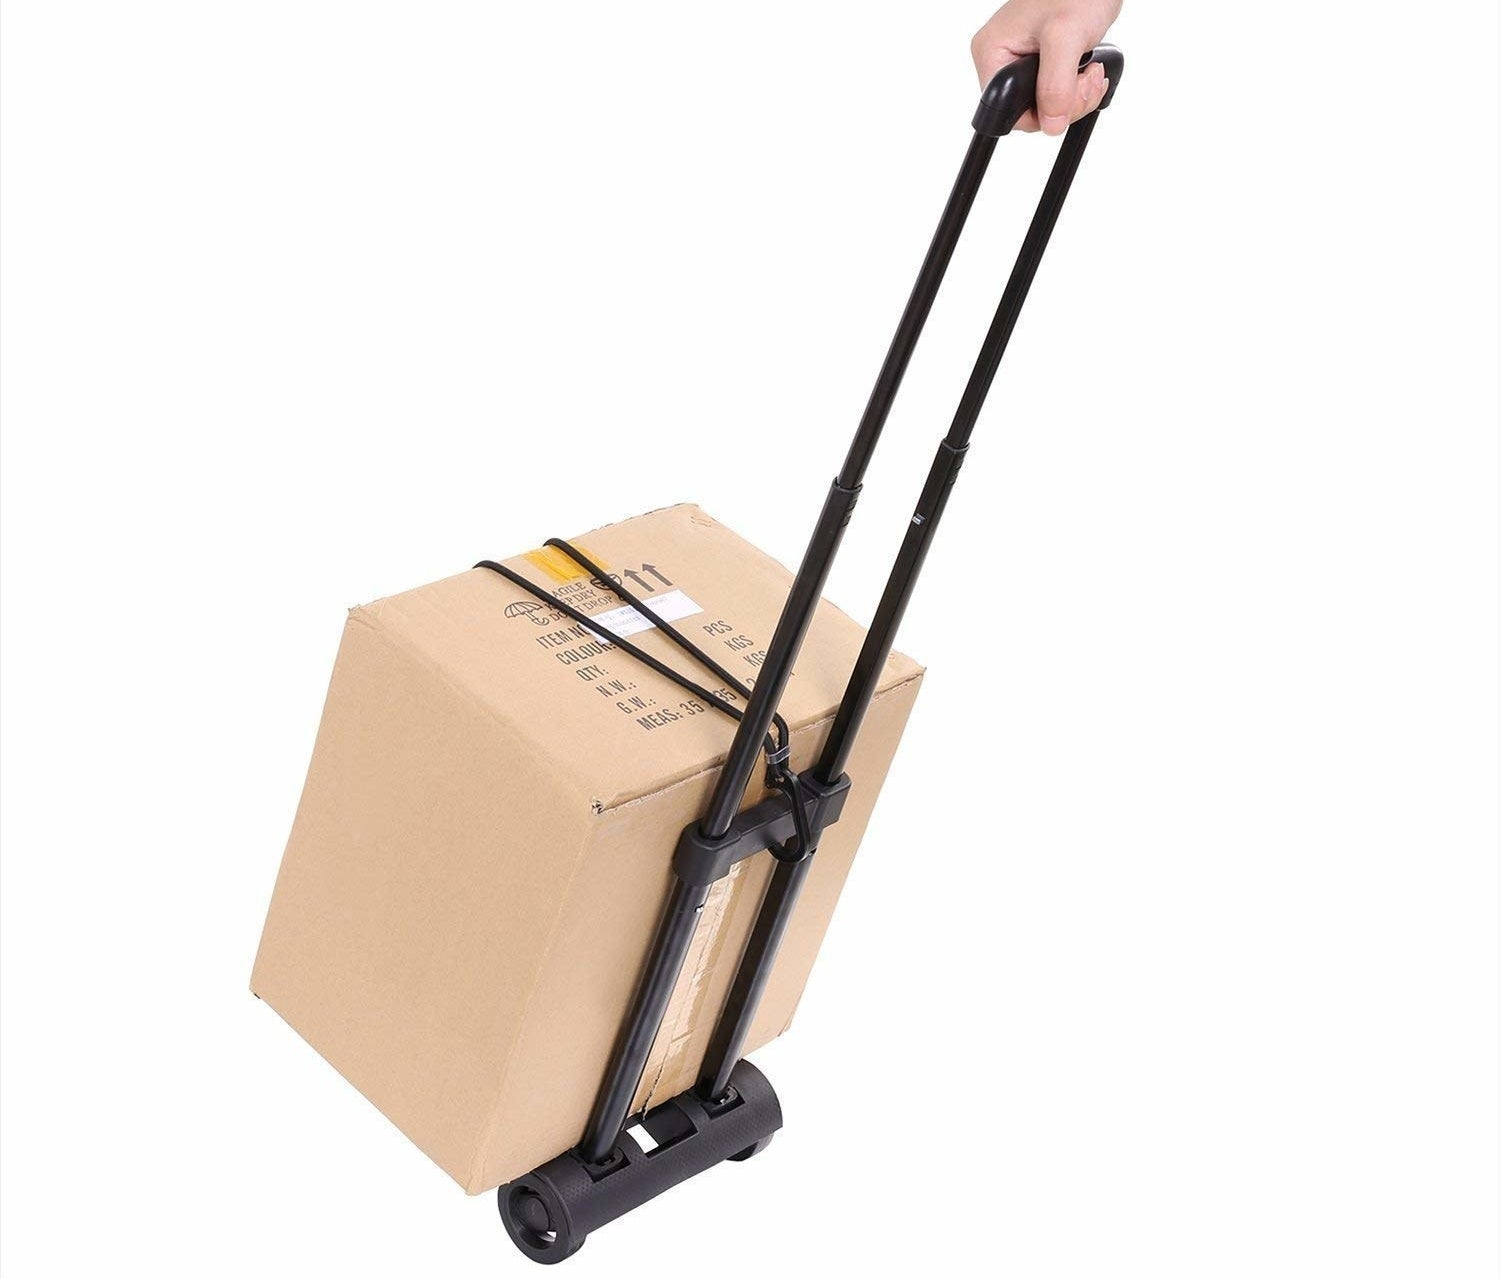 A person carrying a box using the luggage trolley cart